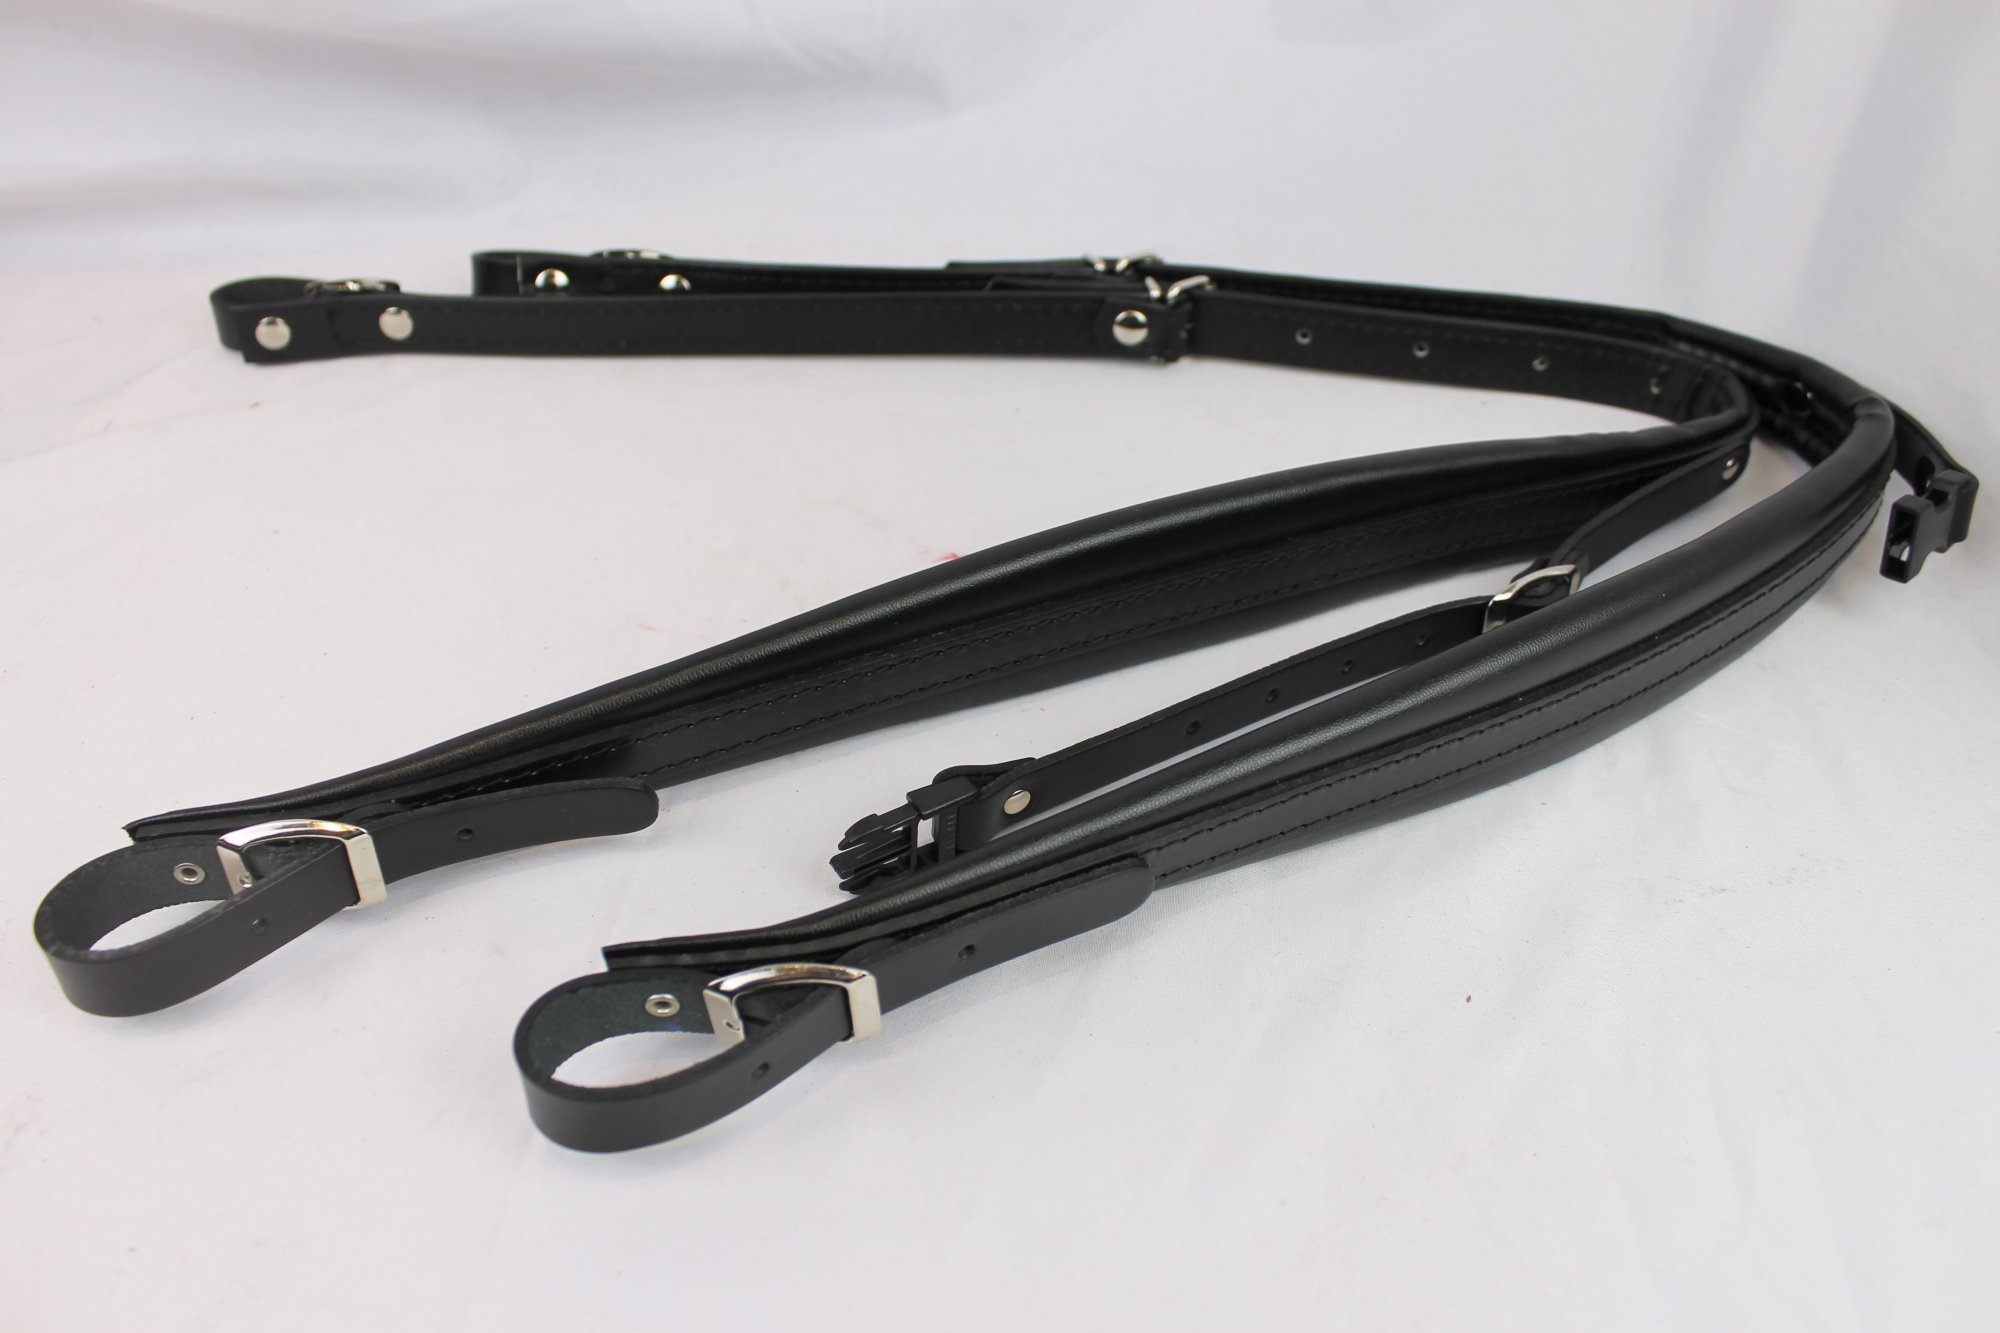 New Black Leather Accordion Shoulder Straps with Back Strap Width (5cm / 2in) Length (82.5~106.75cm / 32.5~42in)